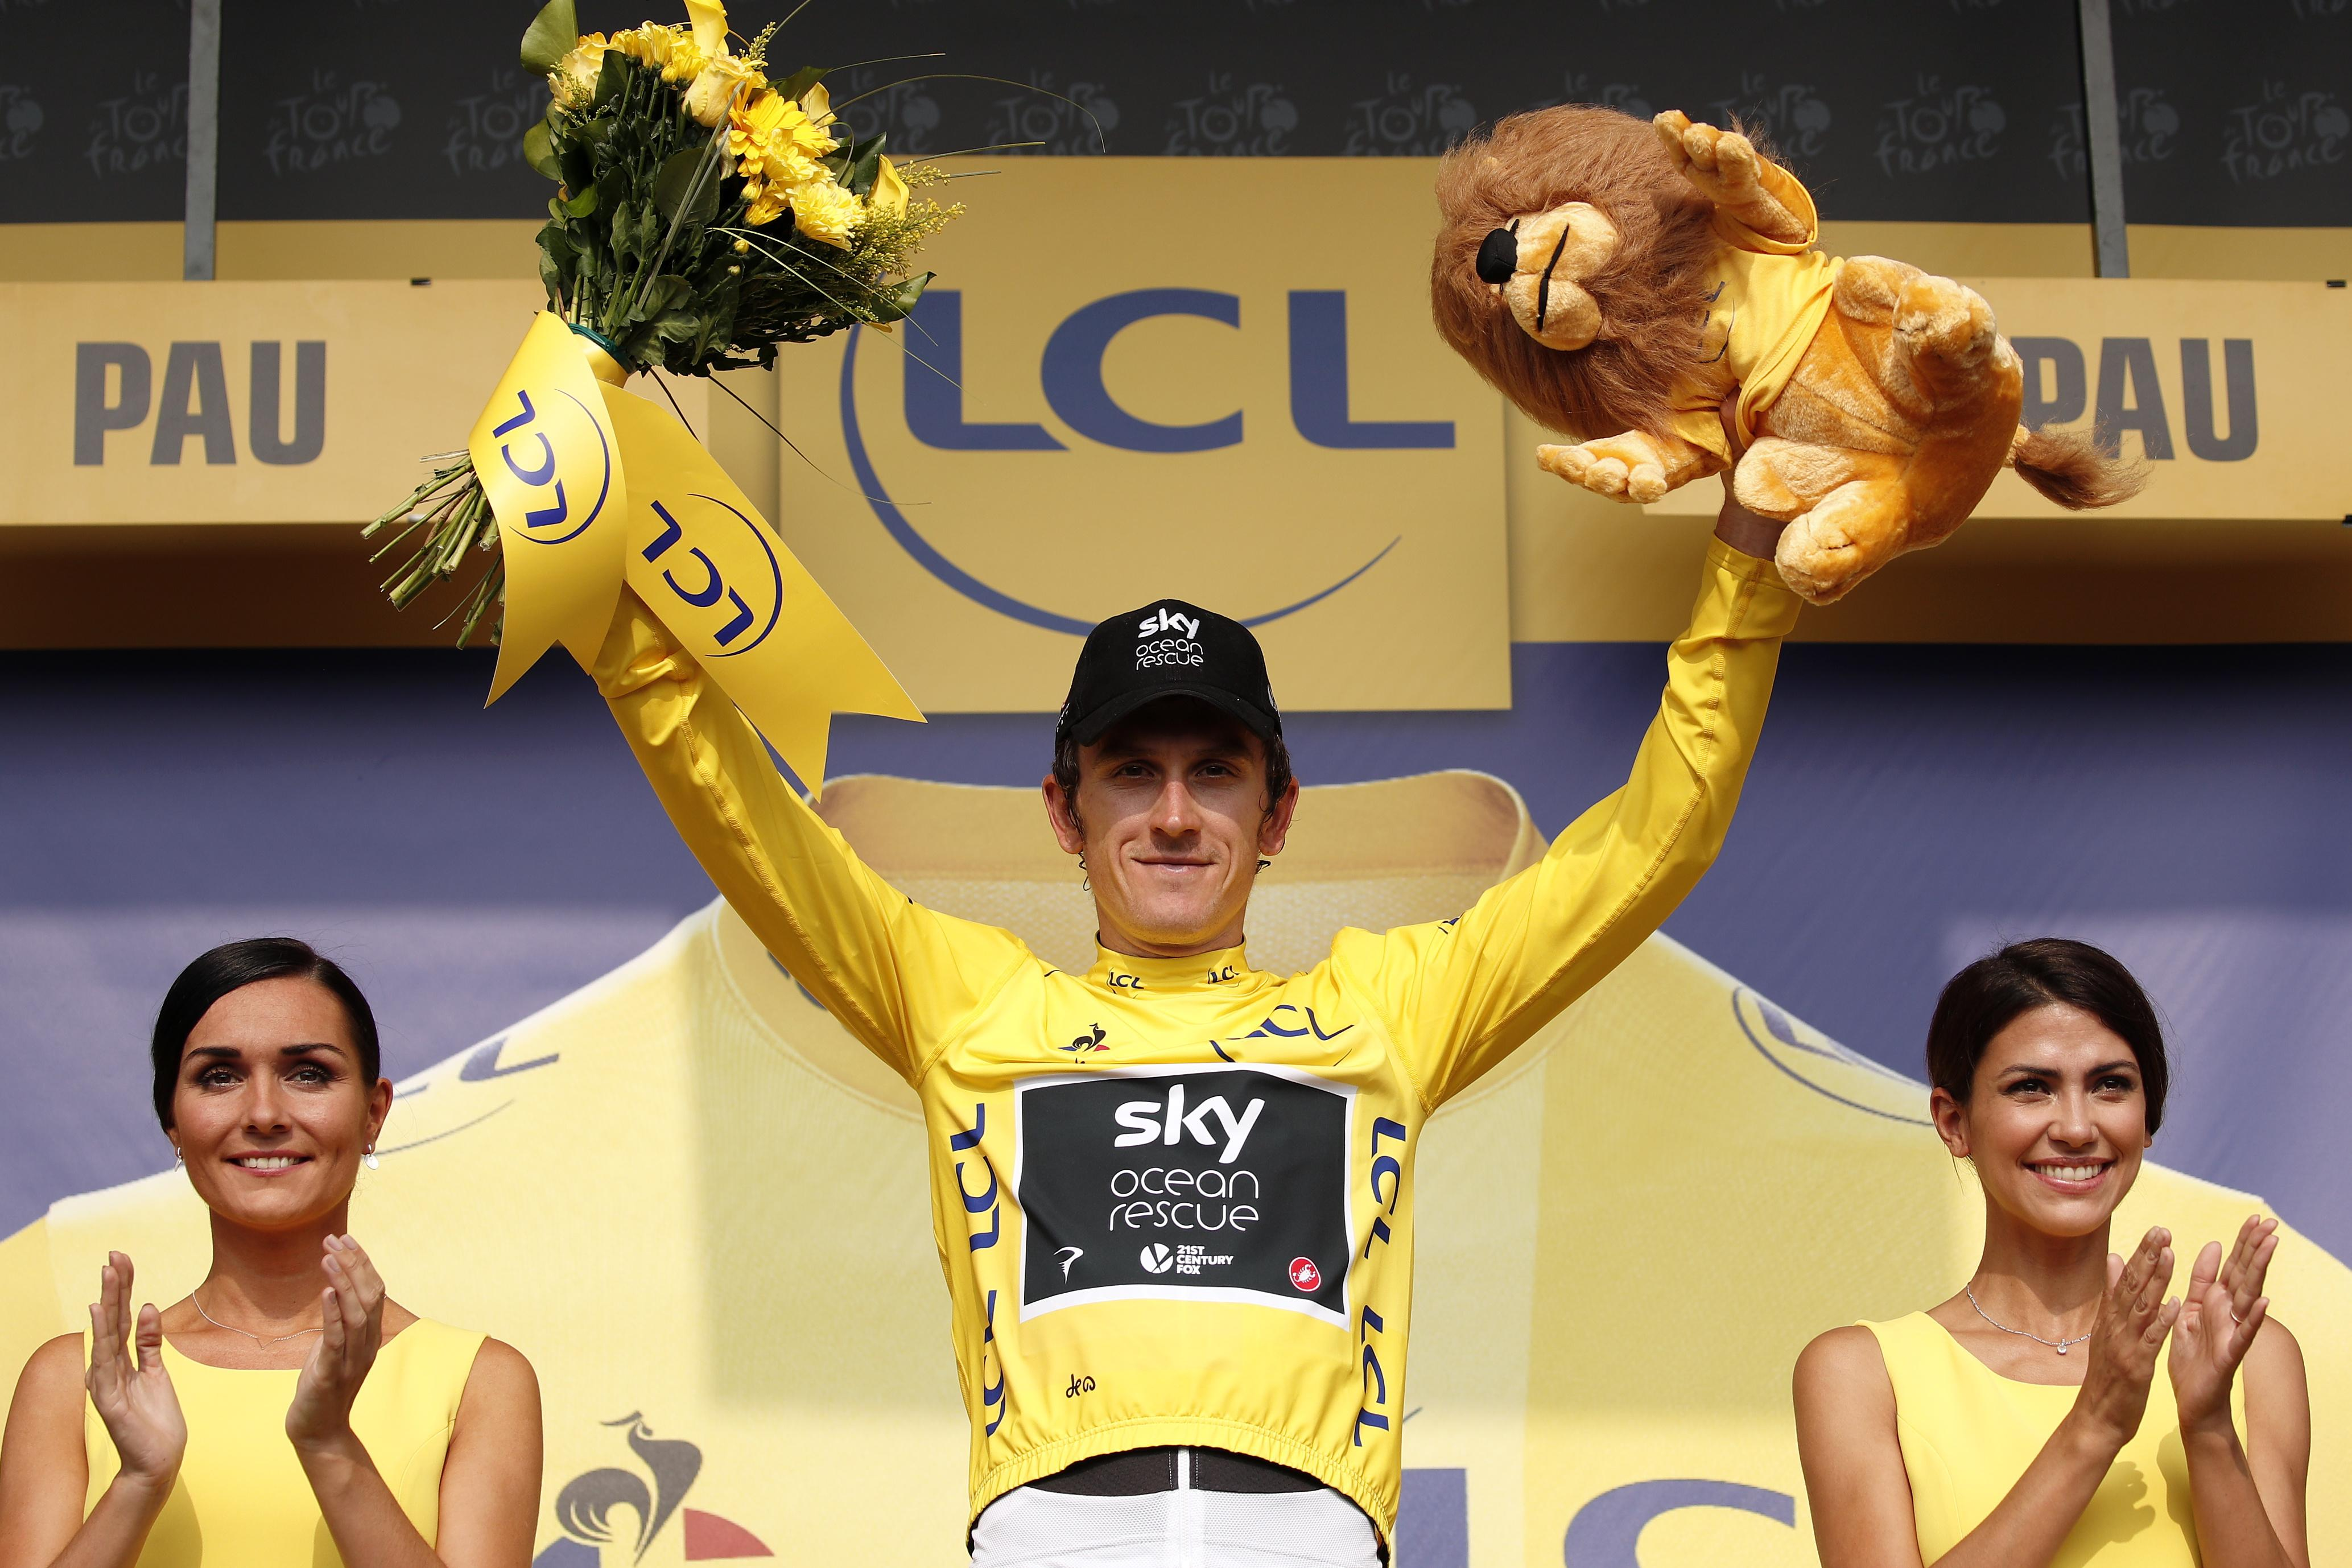 Team Sky ace Geraint Thomas still has the Yellow Jersey with a 1min 59sec lead over Tom Dumoulin